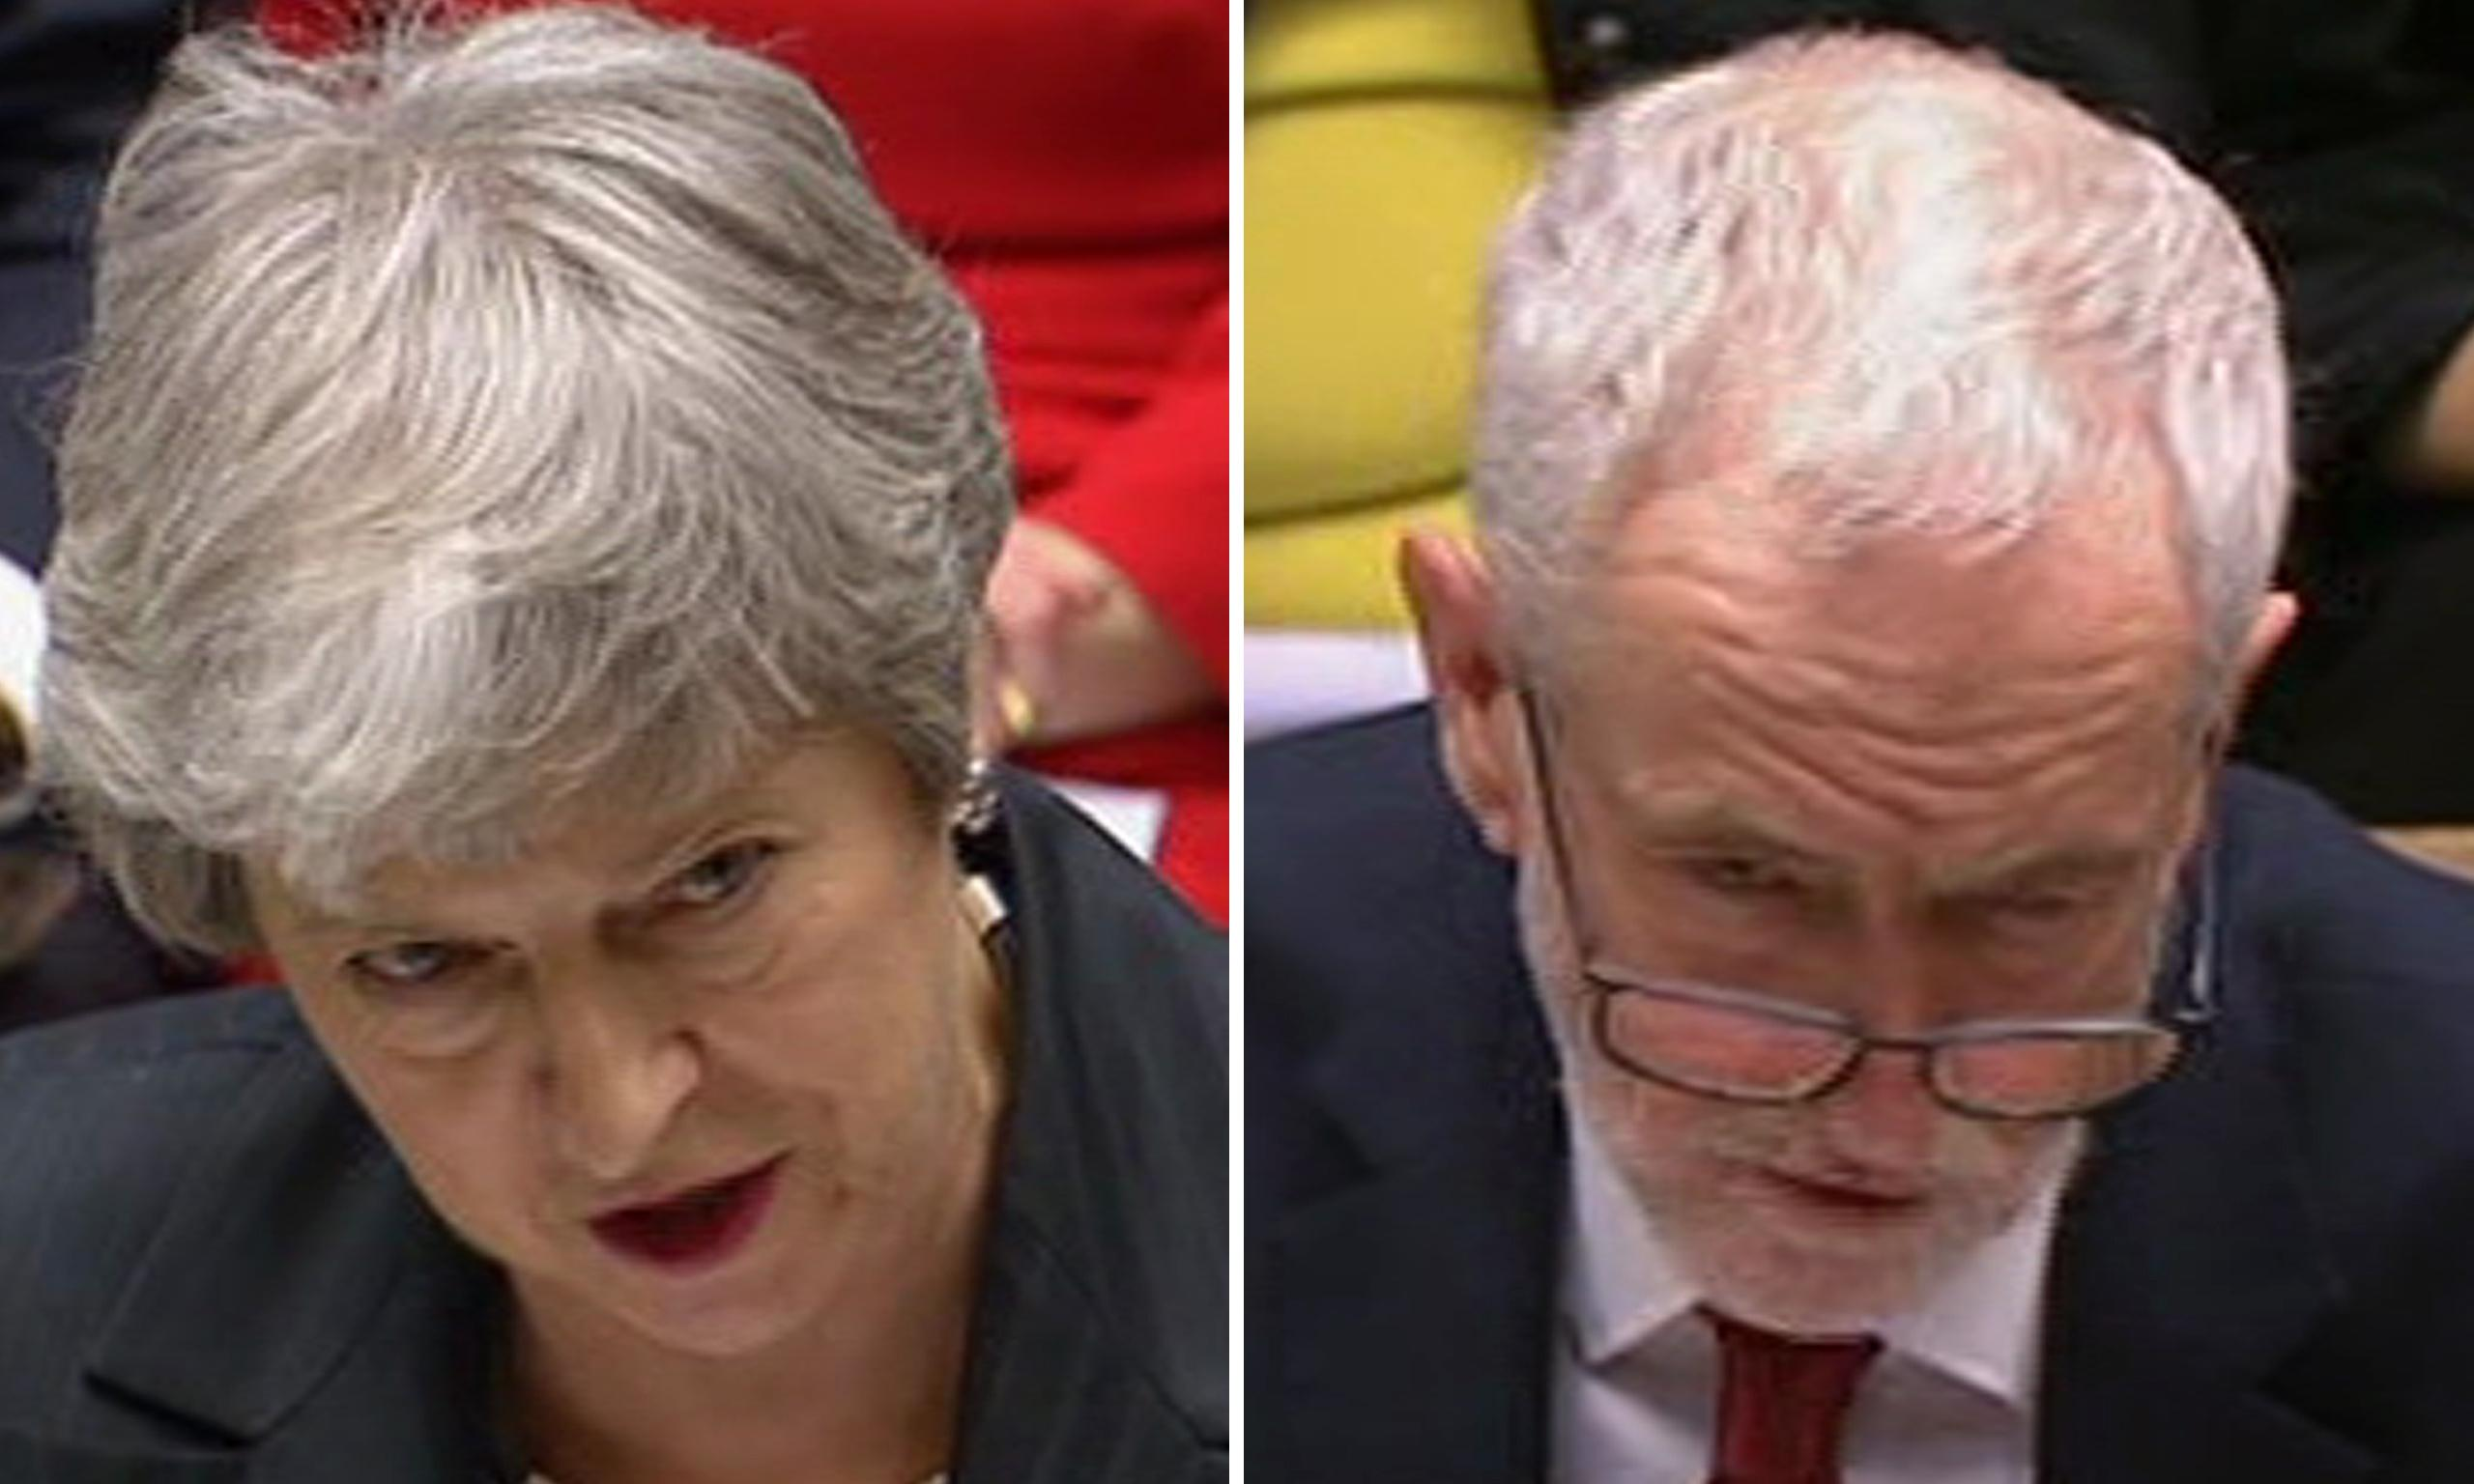 PMQs verdict: stubborn or detached from reality, May just keeps going